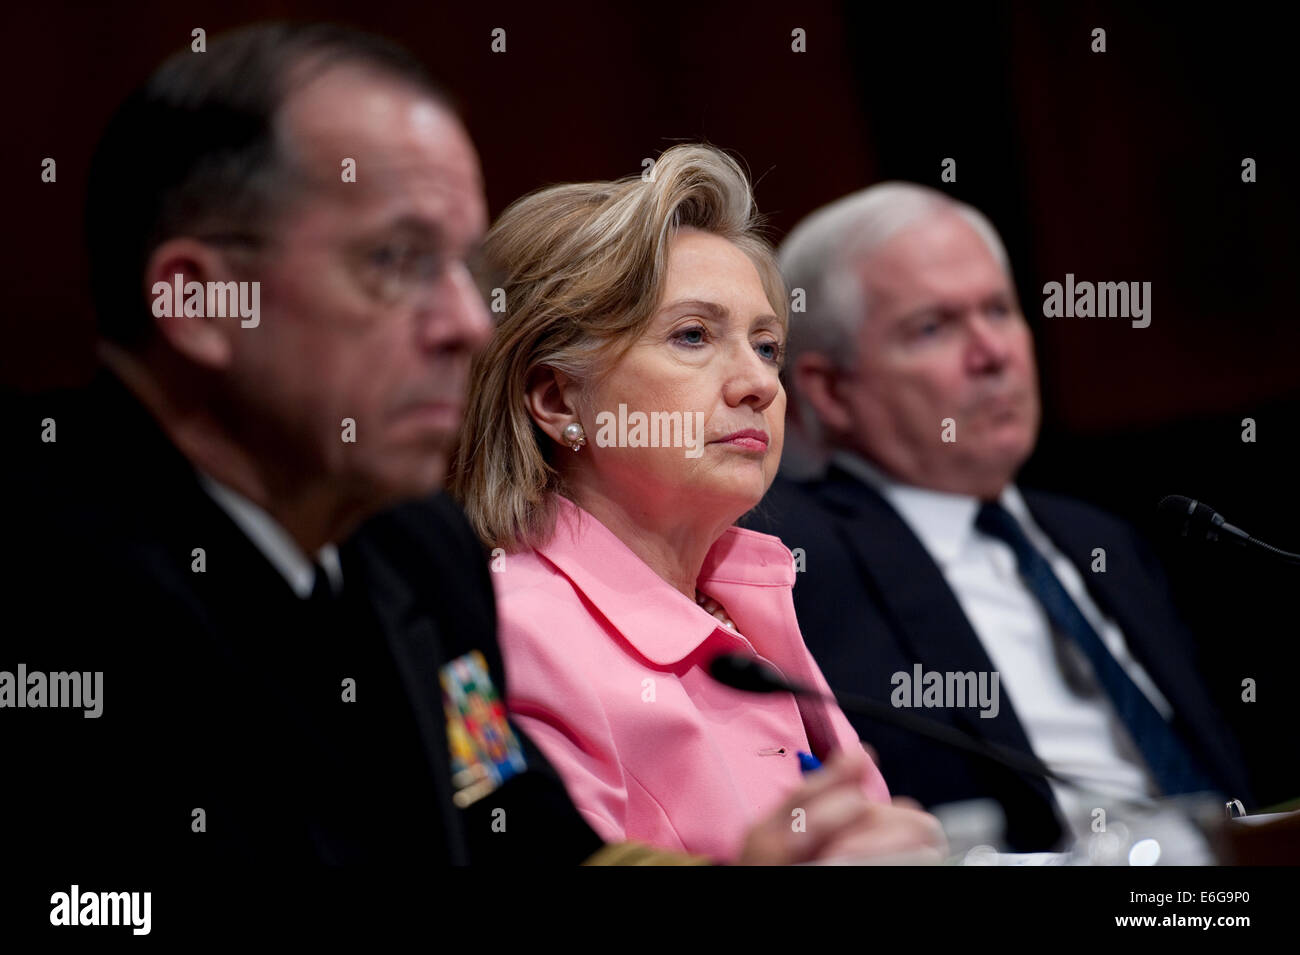 US Secretary of State Hillary Rodham Clinton sits between Join Chiefs Chair Adm. Mike Mullen and Secretary of Defense - Stock Image